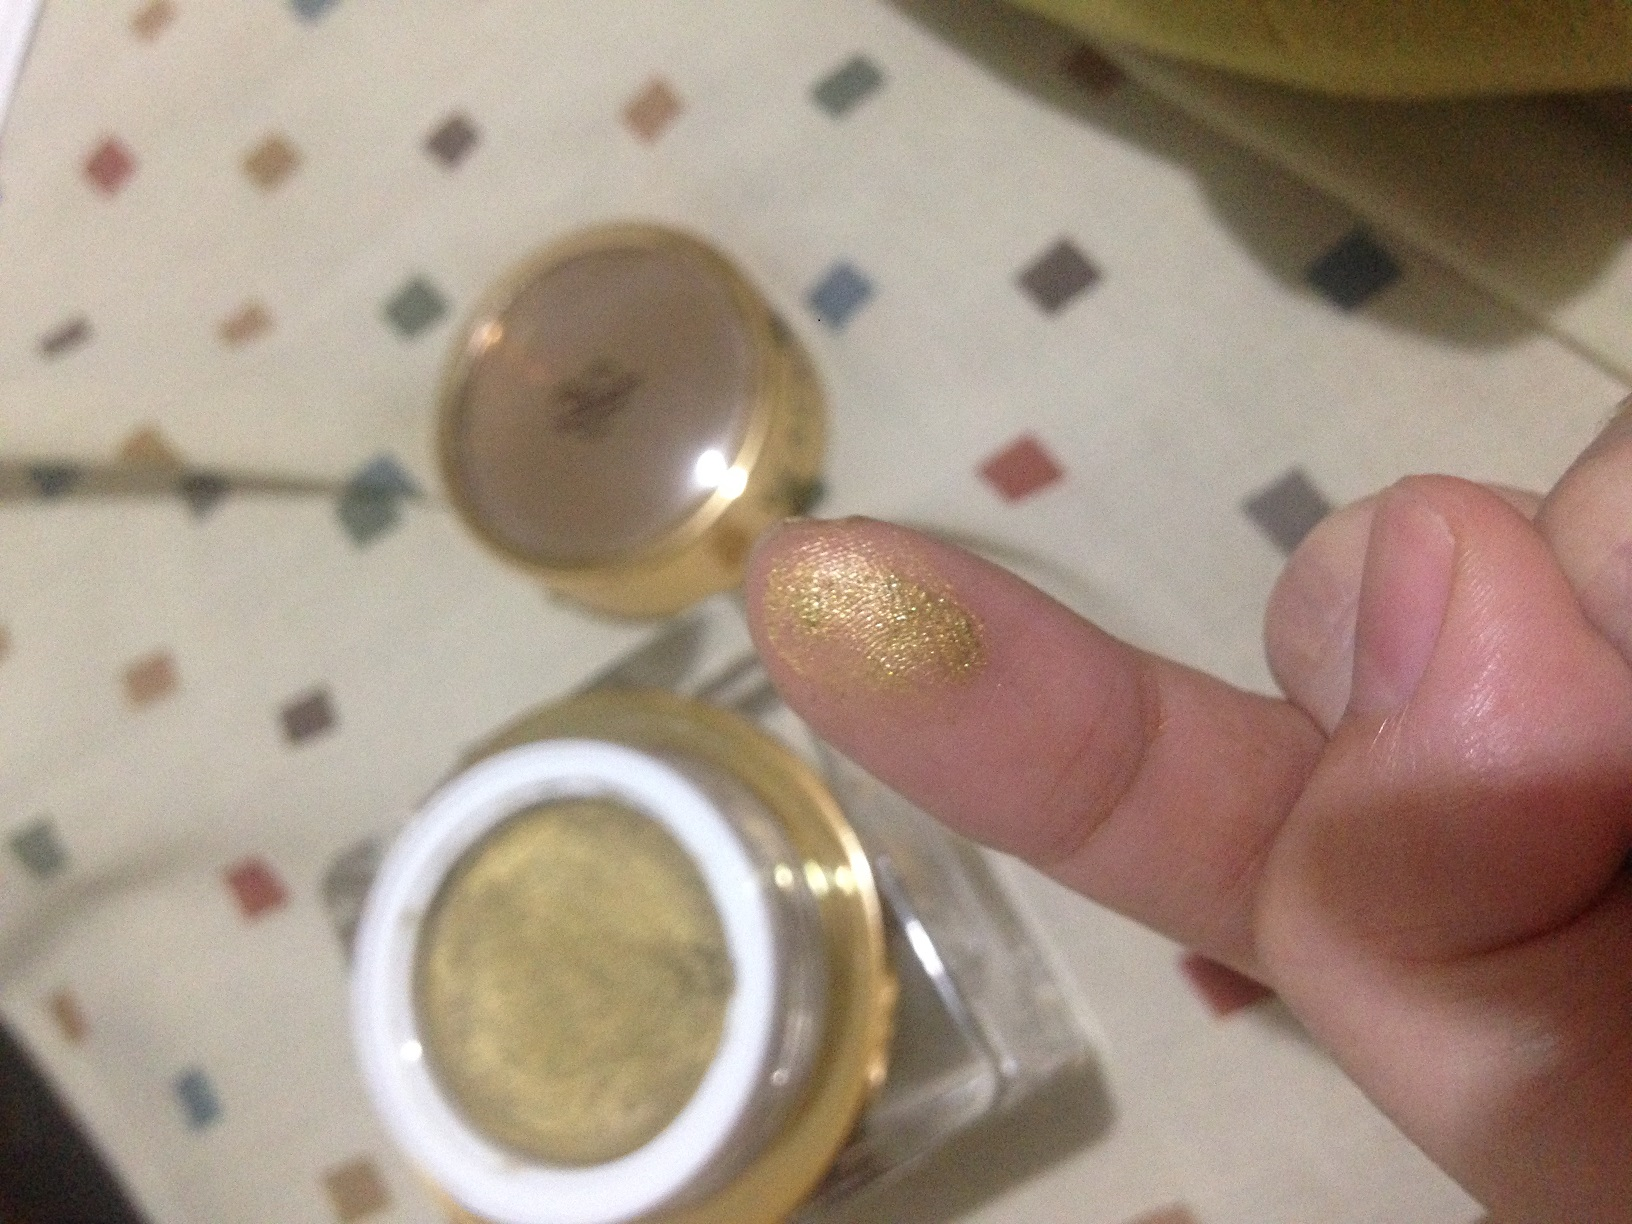 Black Pearl Cosmetics 24k Gold Mask Product Review - Gold on fingertips